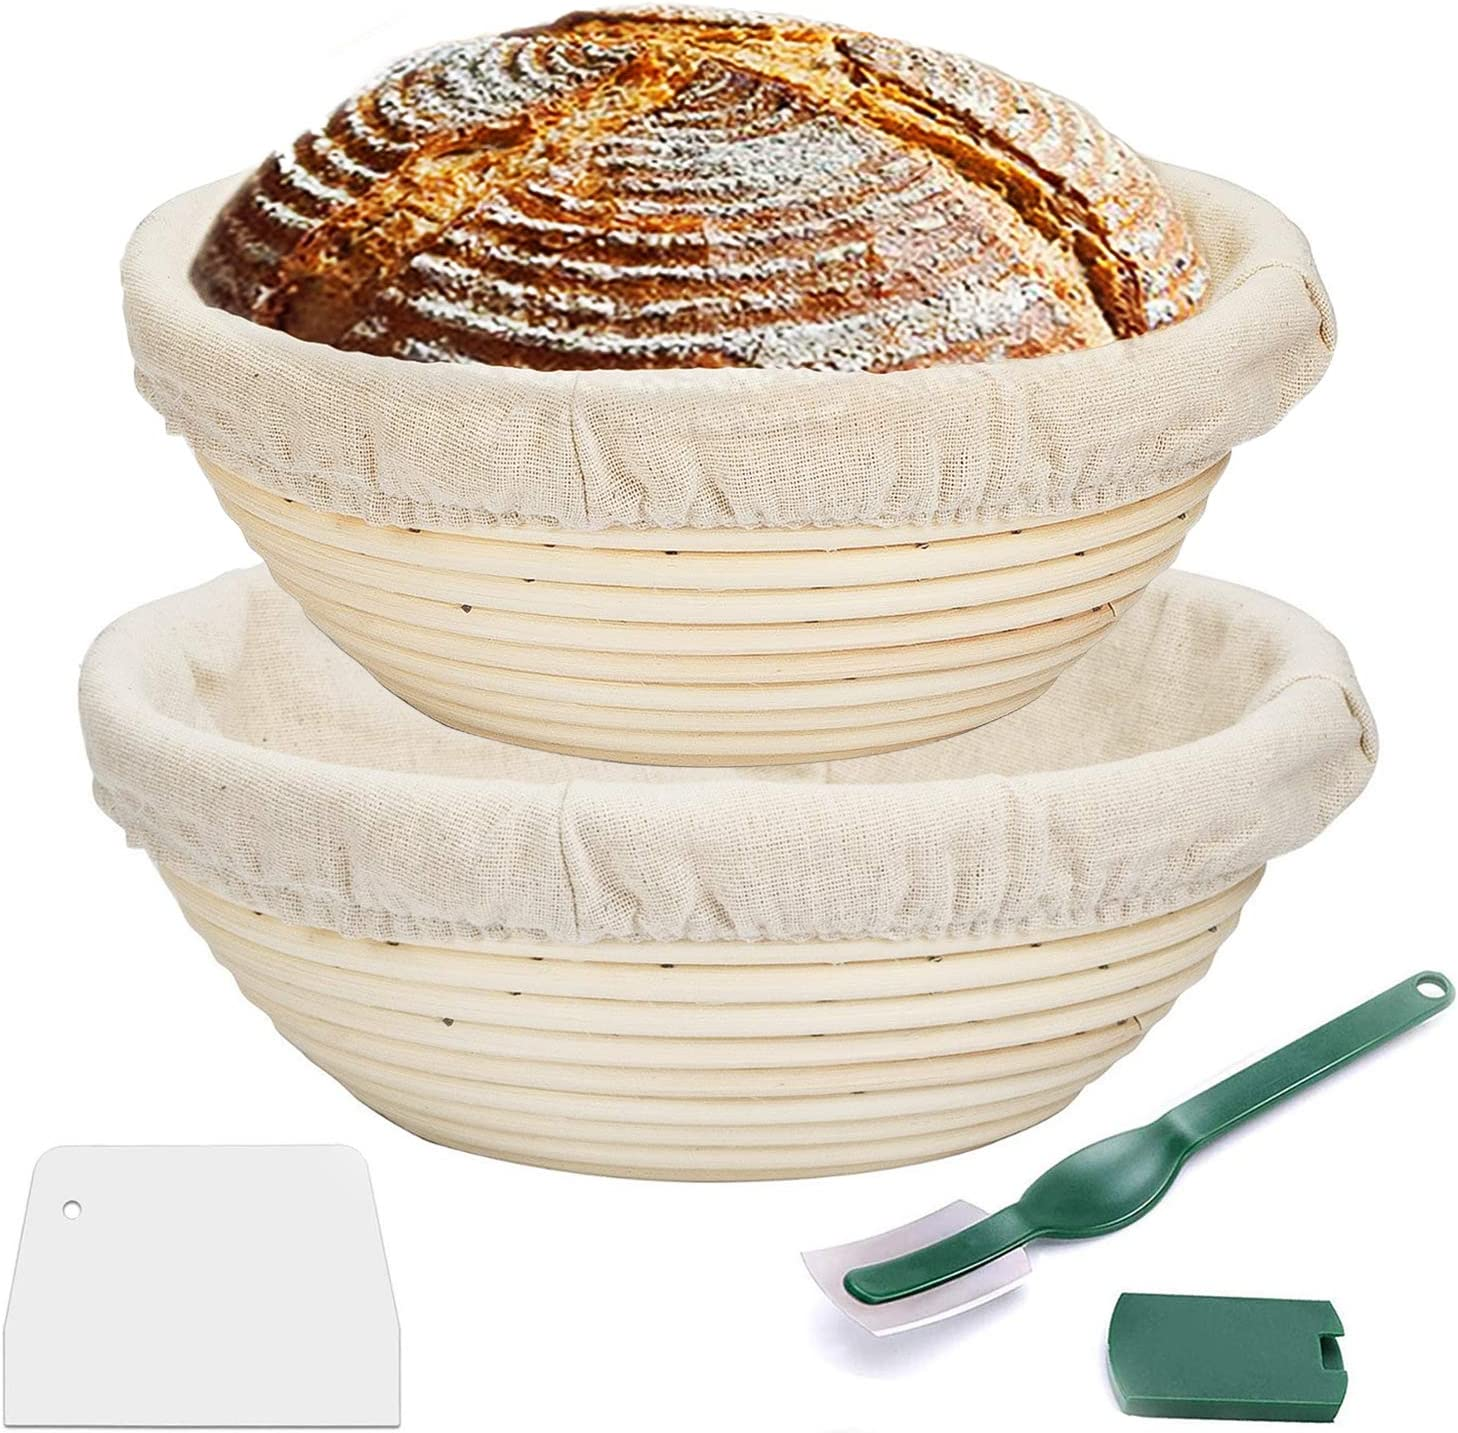 Proofing Basket,WERTIOO Bread Proofing Basket + Bread Lame +Dough Scraper+ Linen Liner Cloth for Professional & Home Bakers (2)